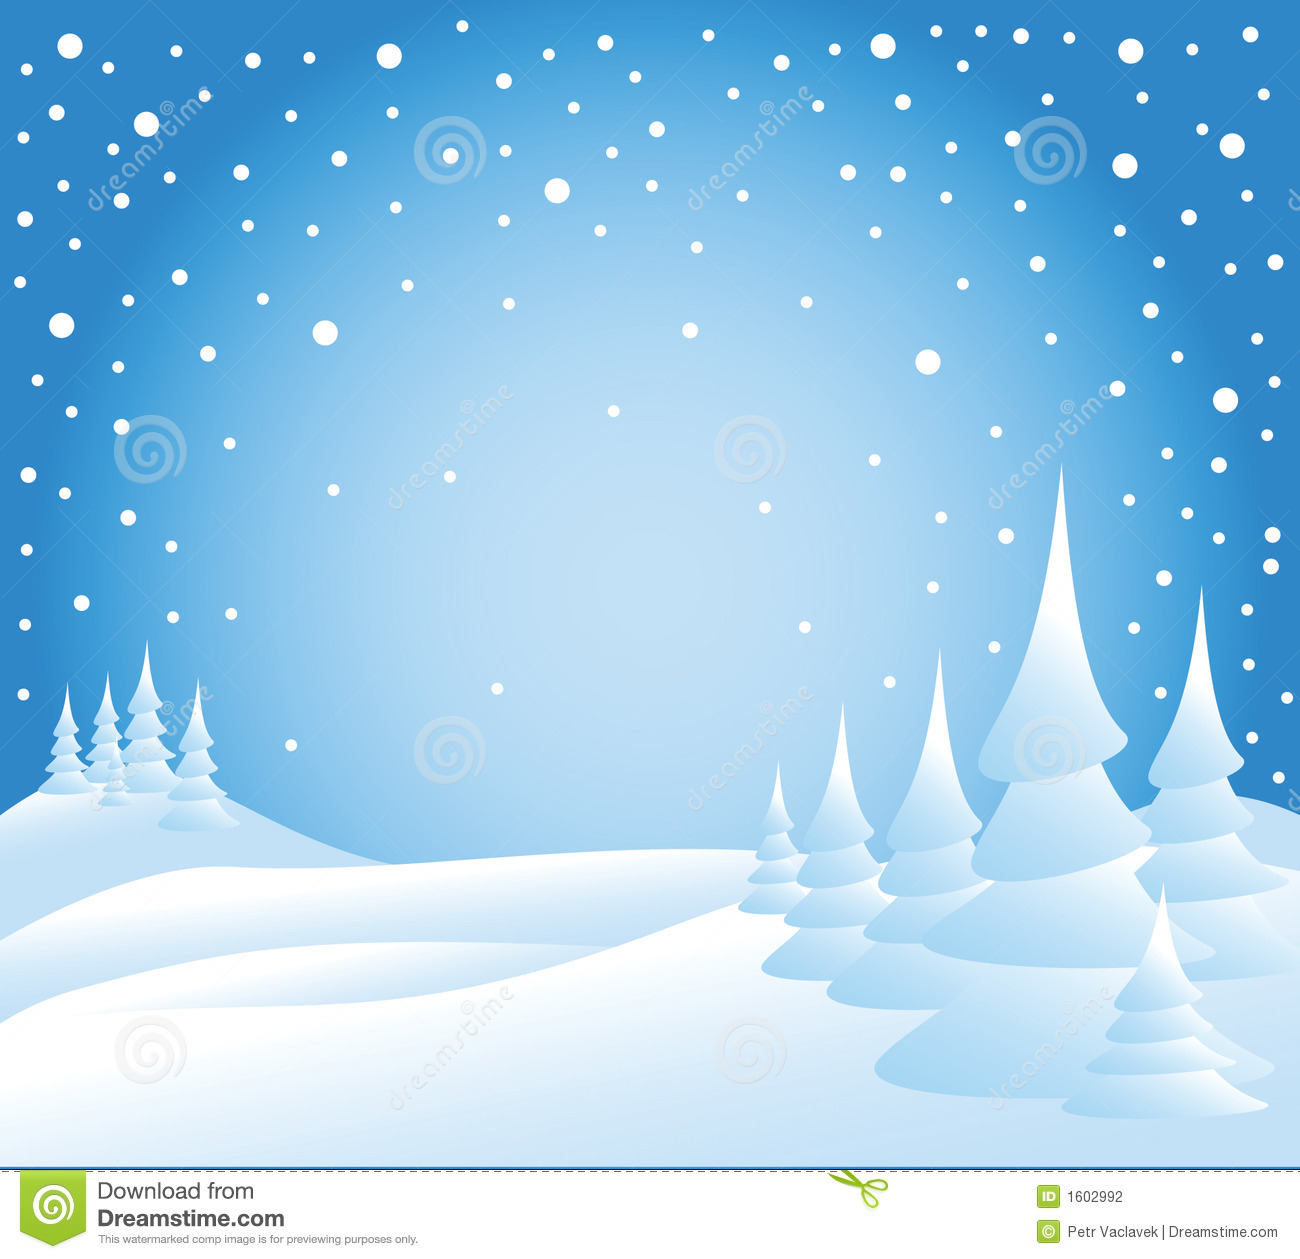 Snow background clipart 5 » Clipart Station.